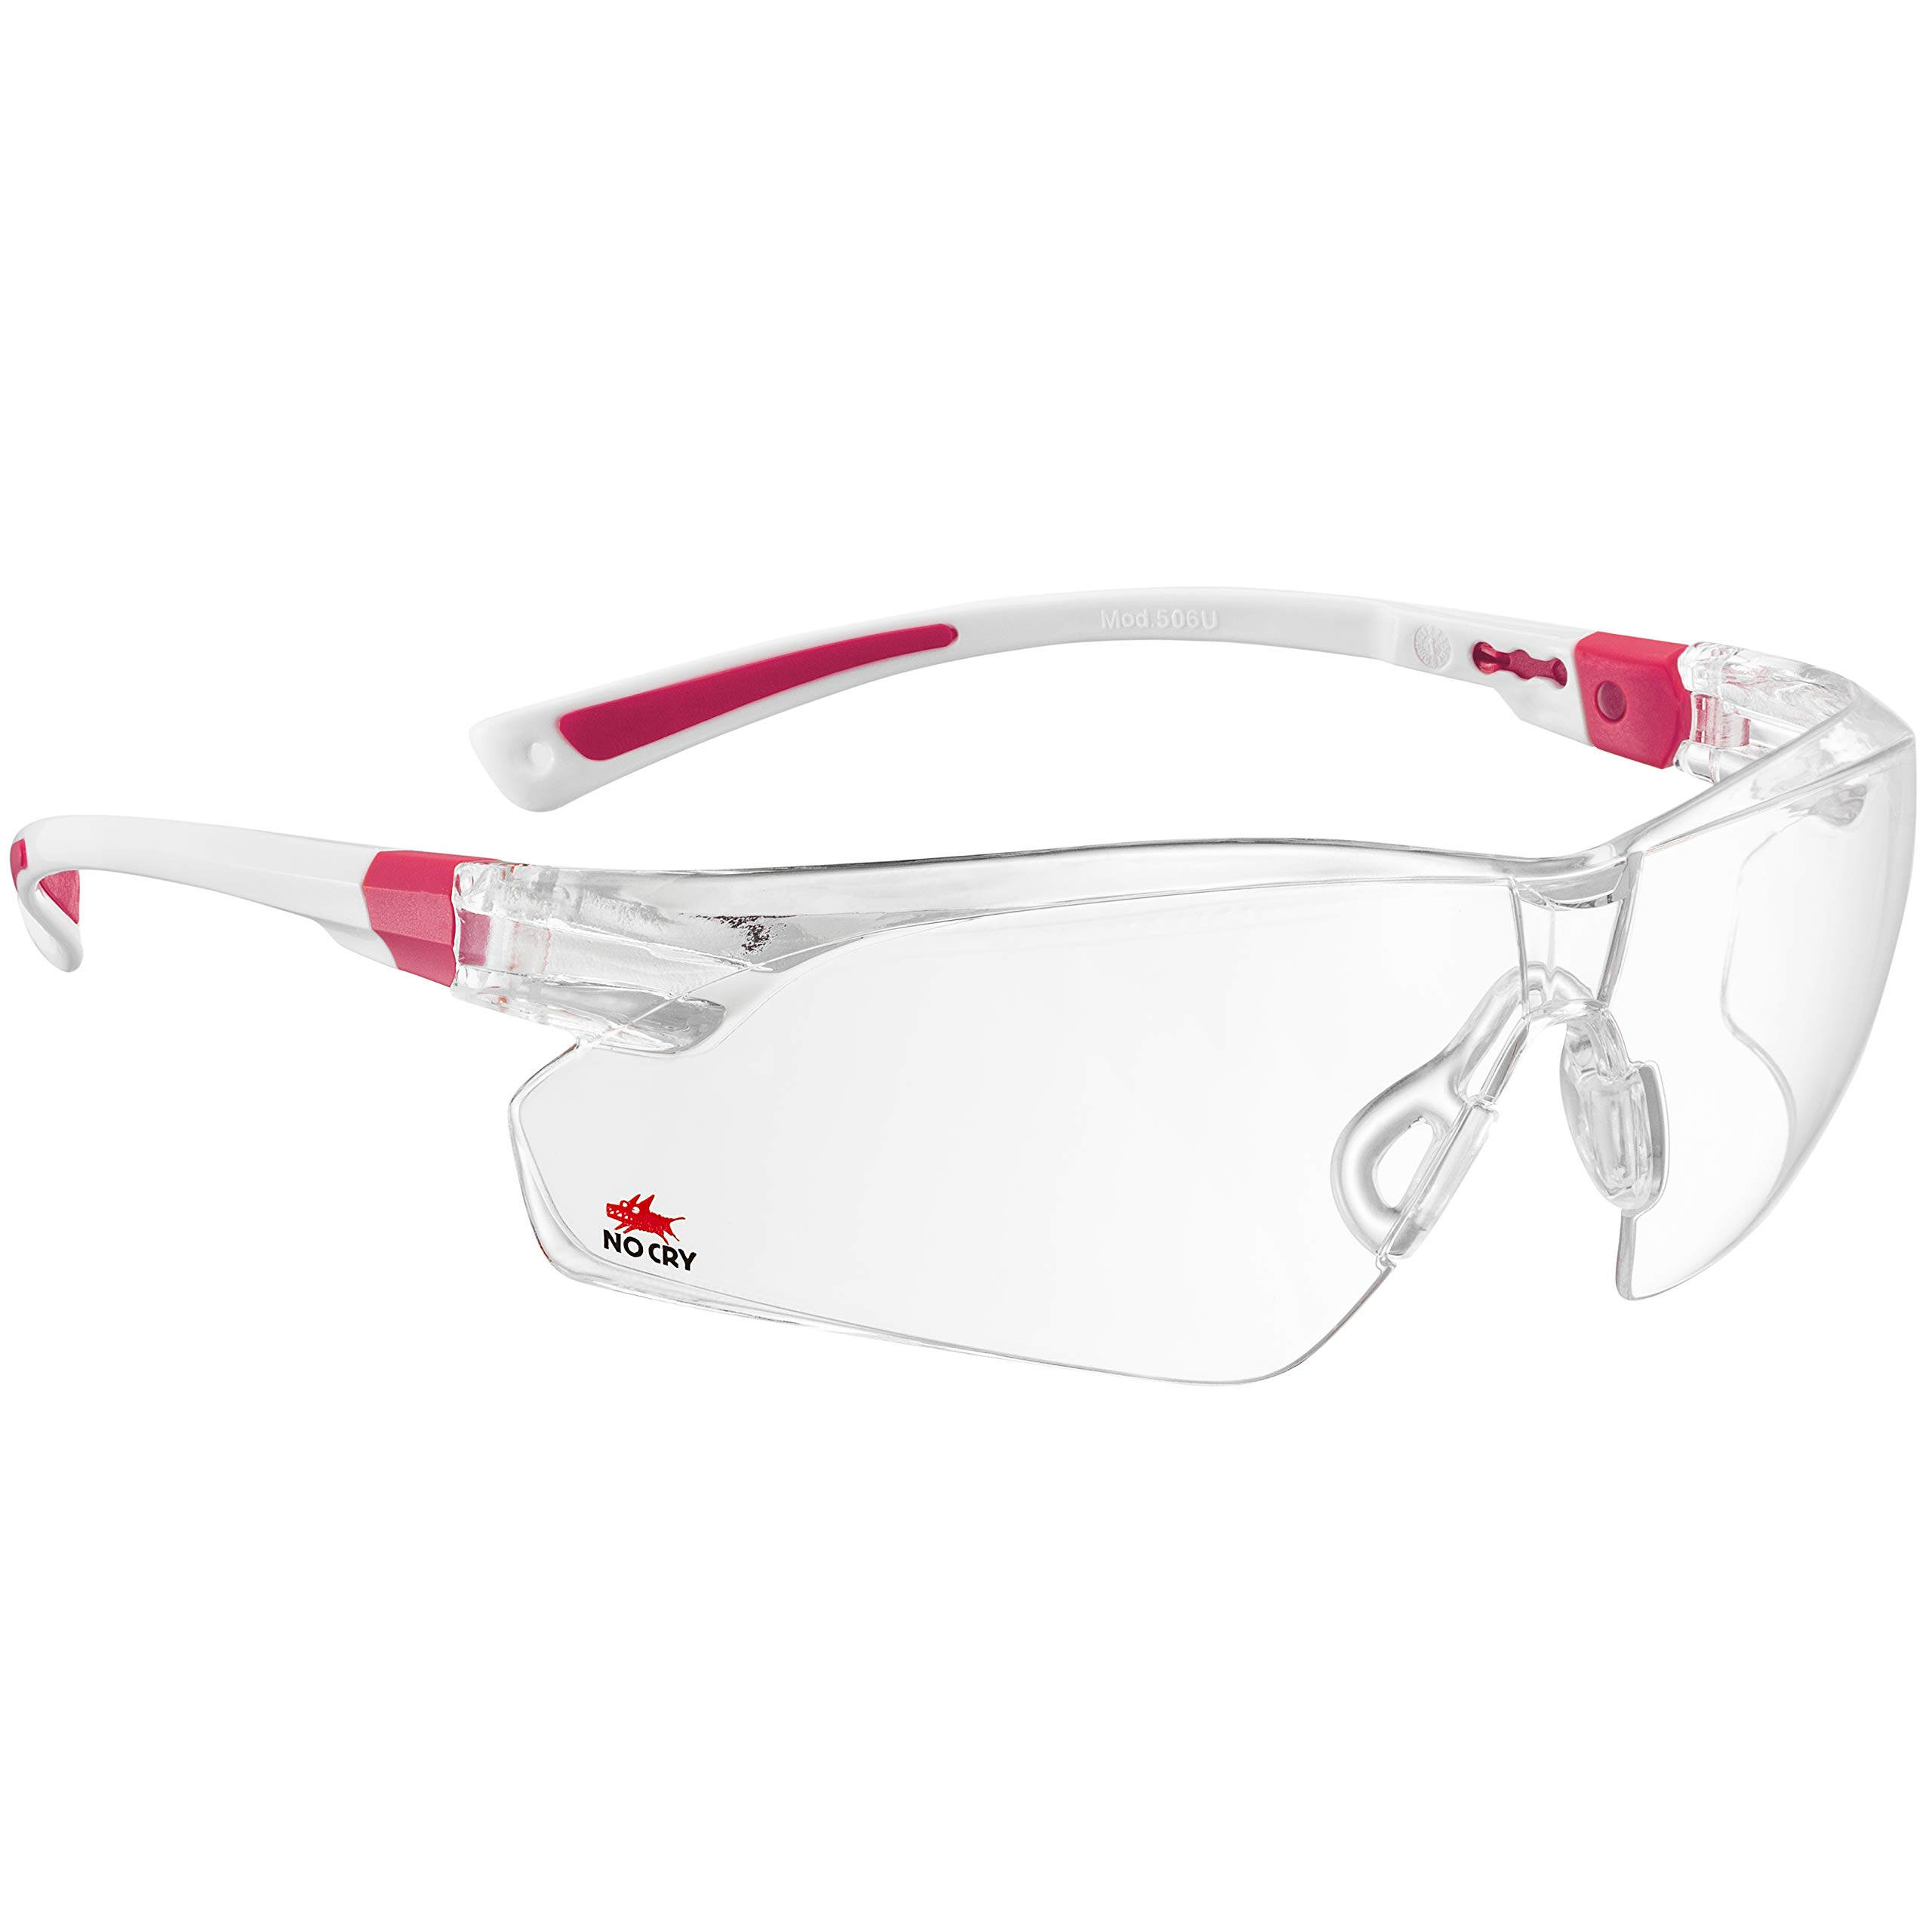 84f15fc9009 NoCry Safety Glasses with Clear Anti Fog Scratch Resistant Wrap-Around  Lenses and No-